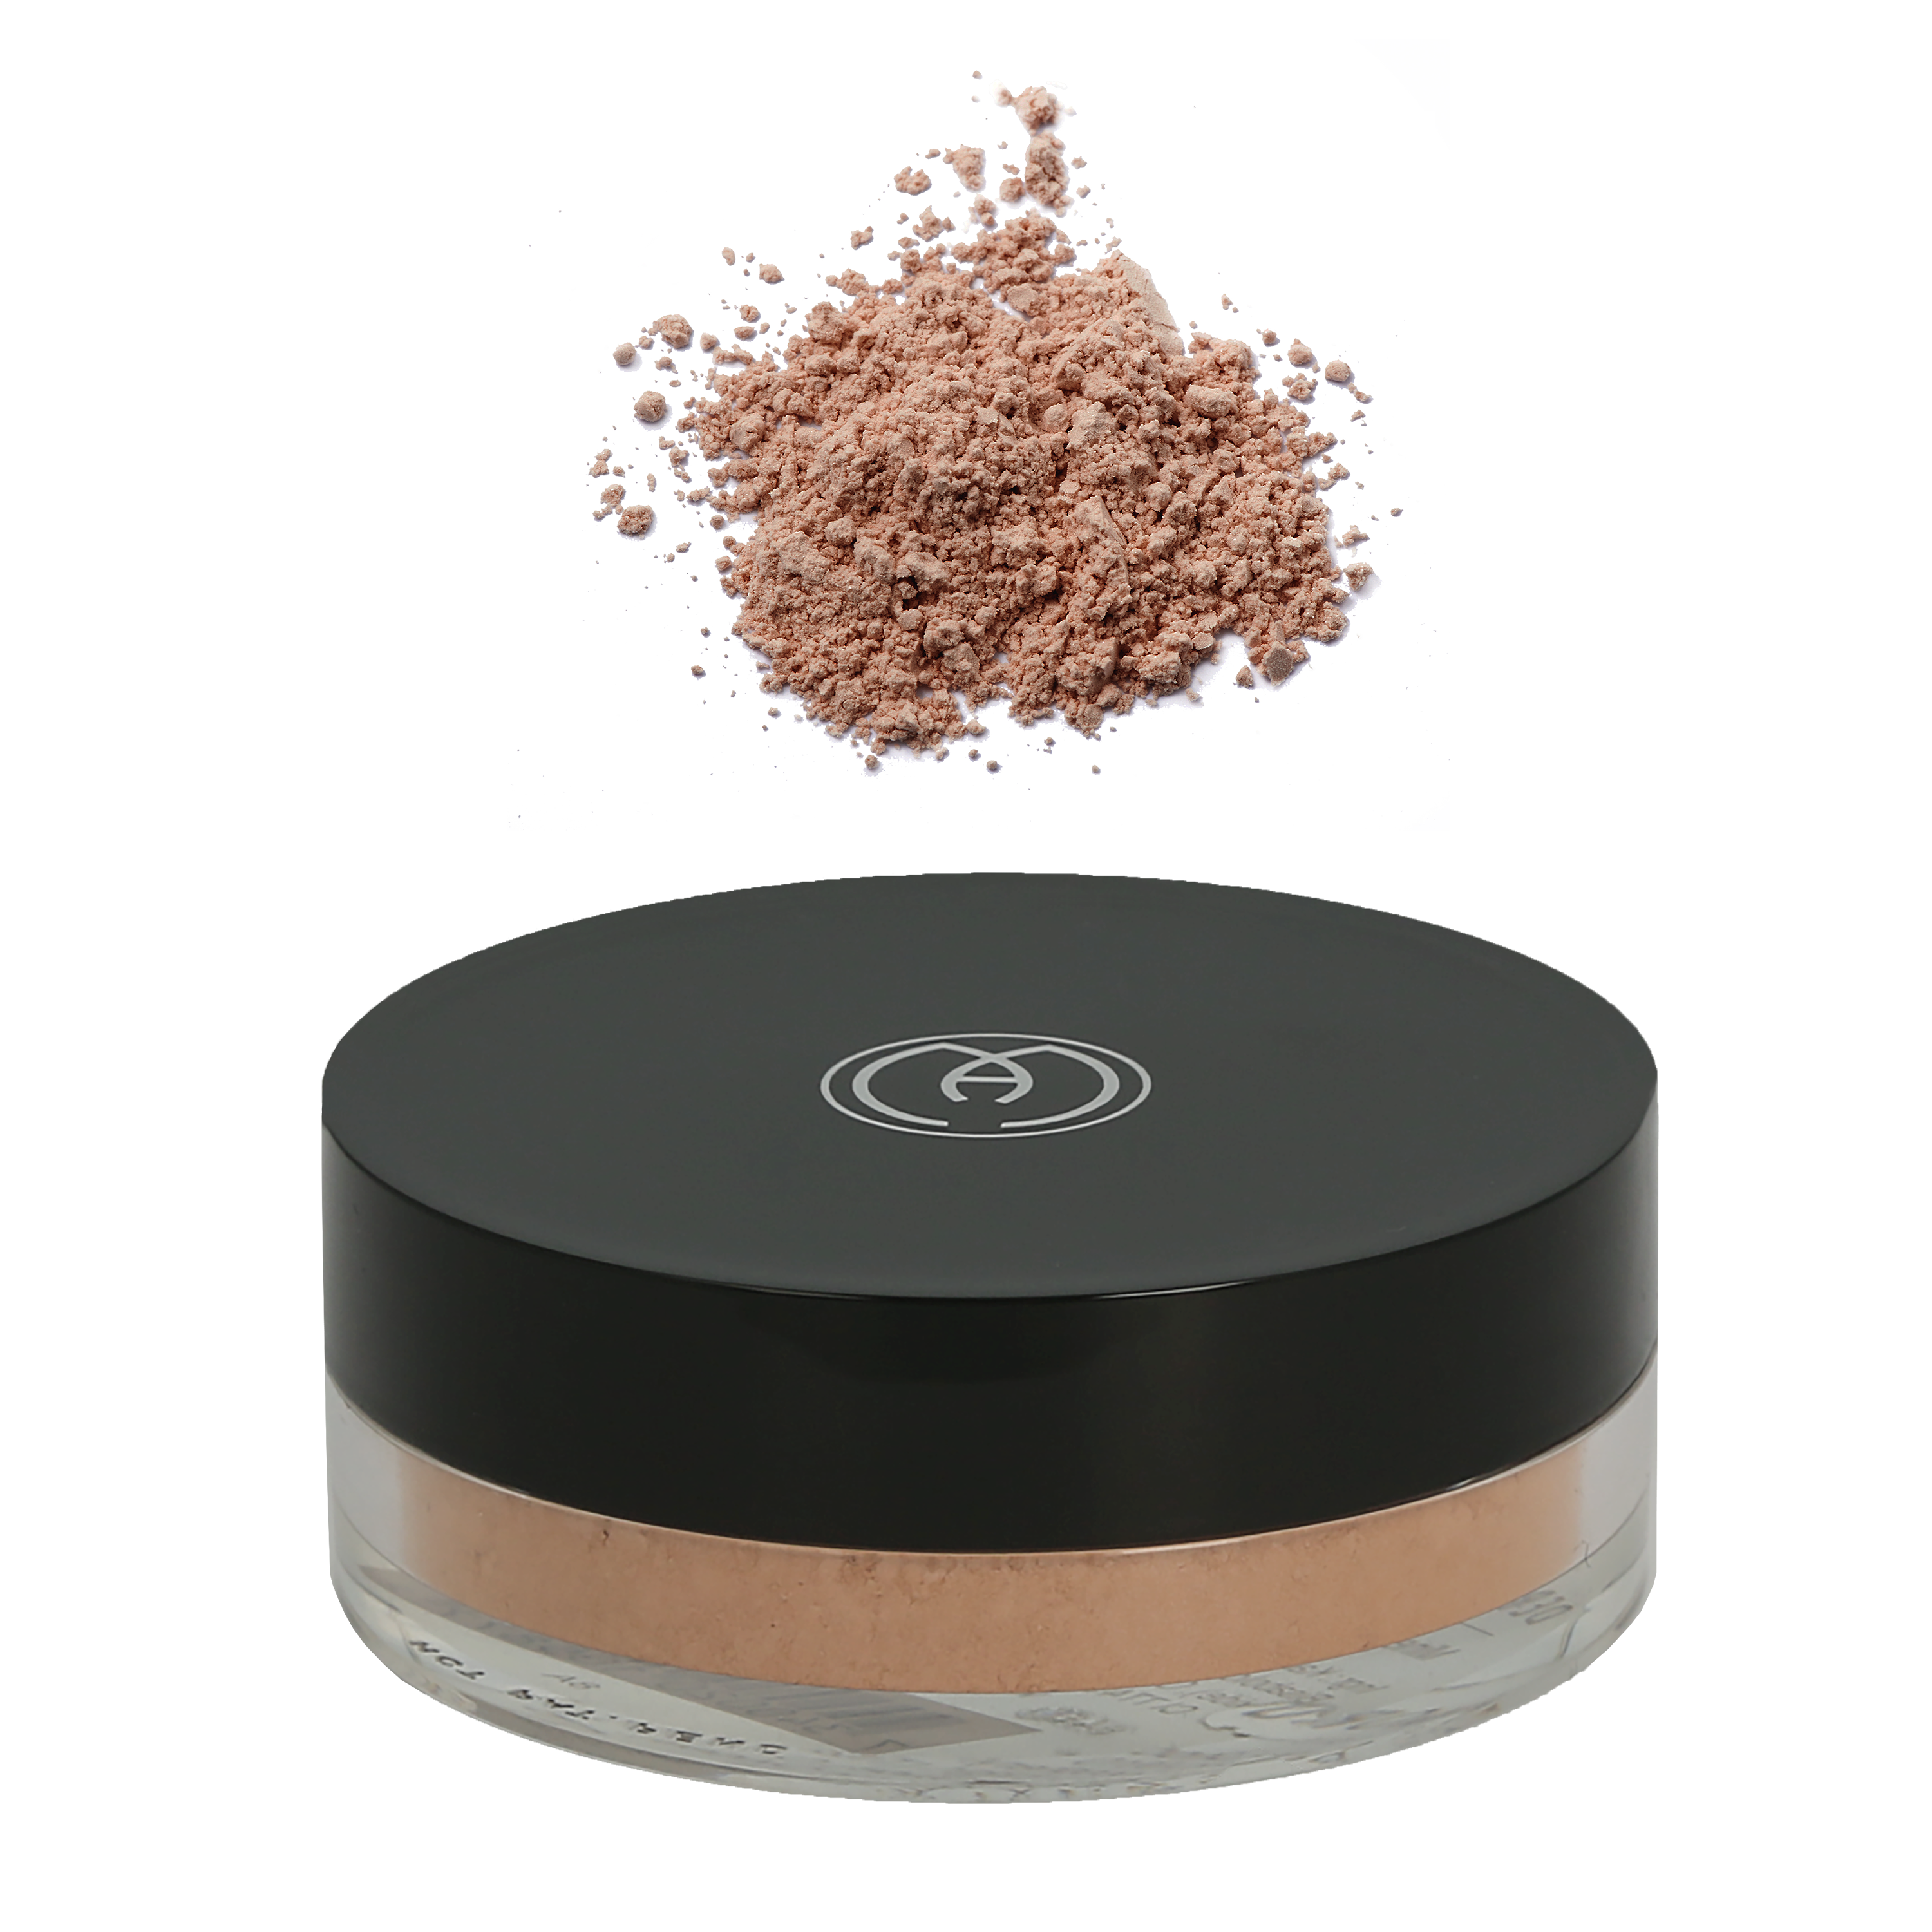 Mineral Powder Chocolate